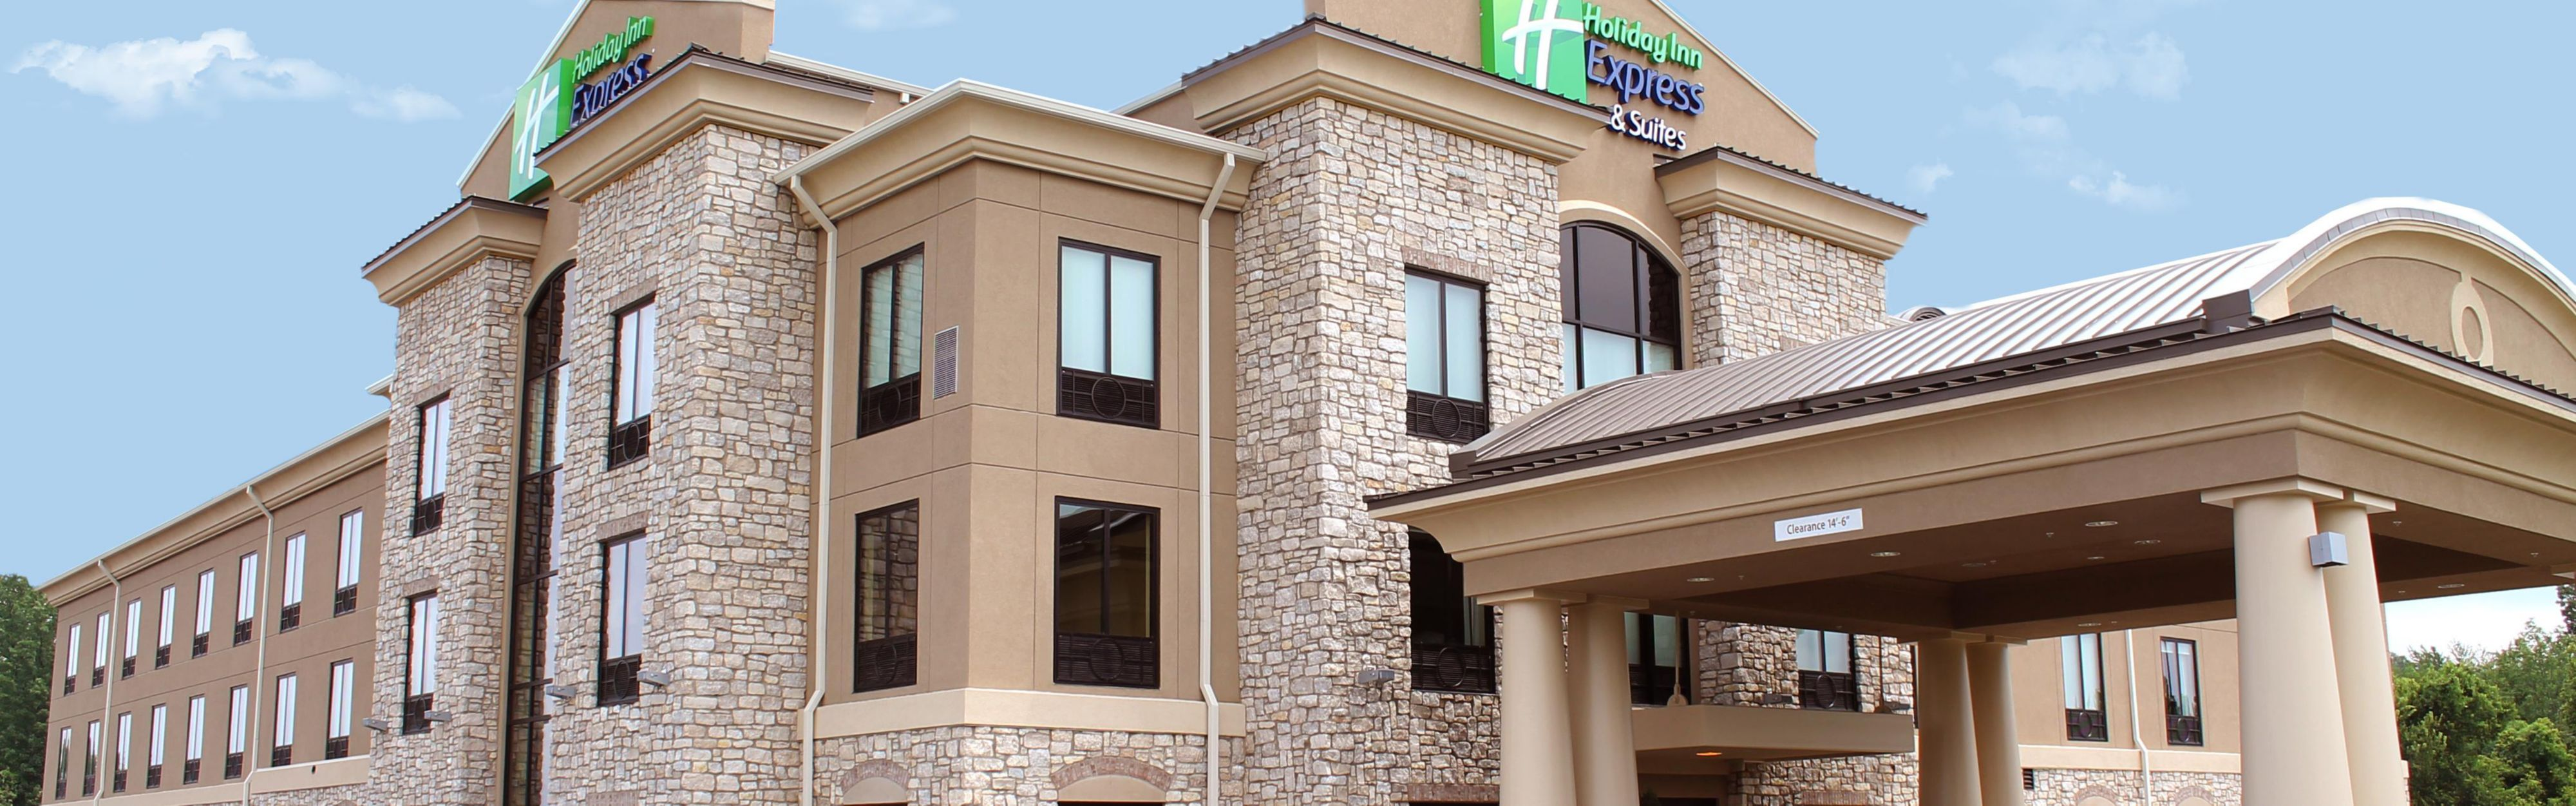 Holiday Inn Express & Suites Paducah West image 0